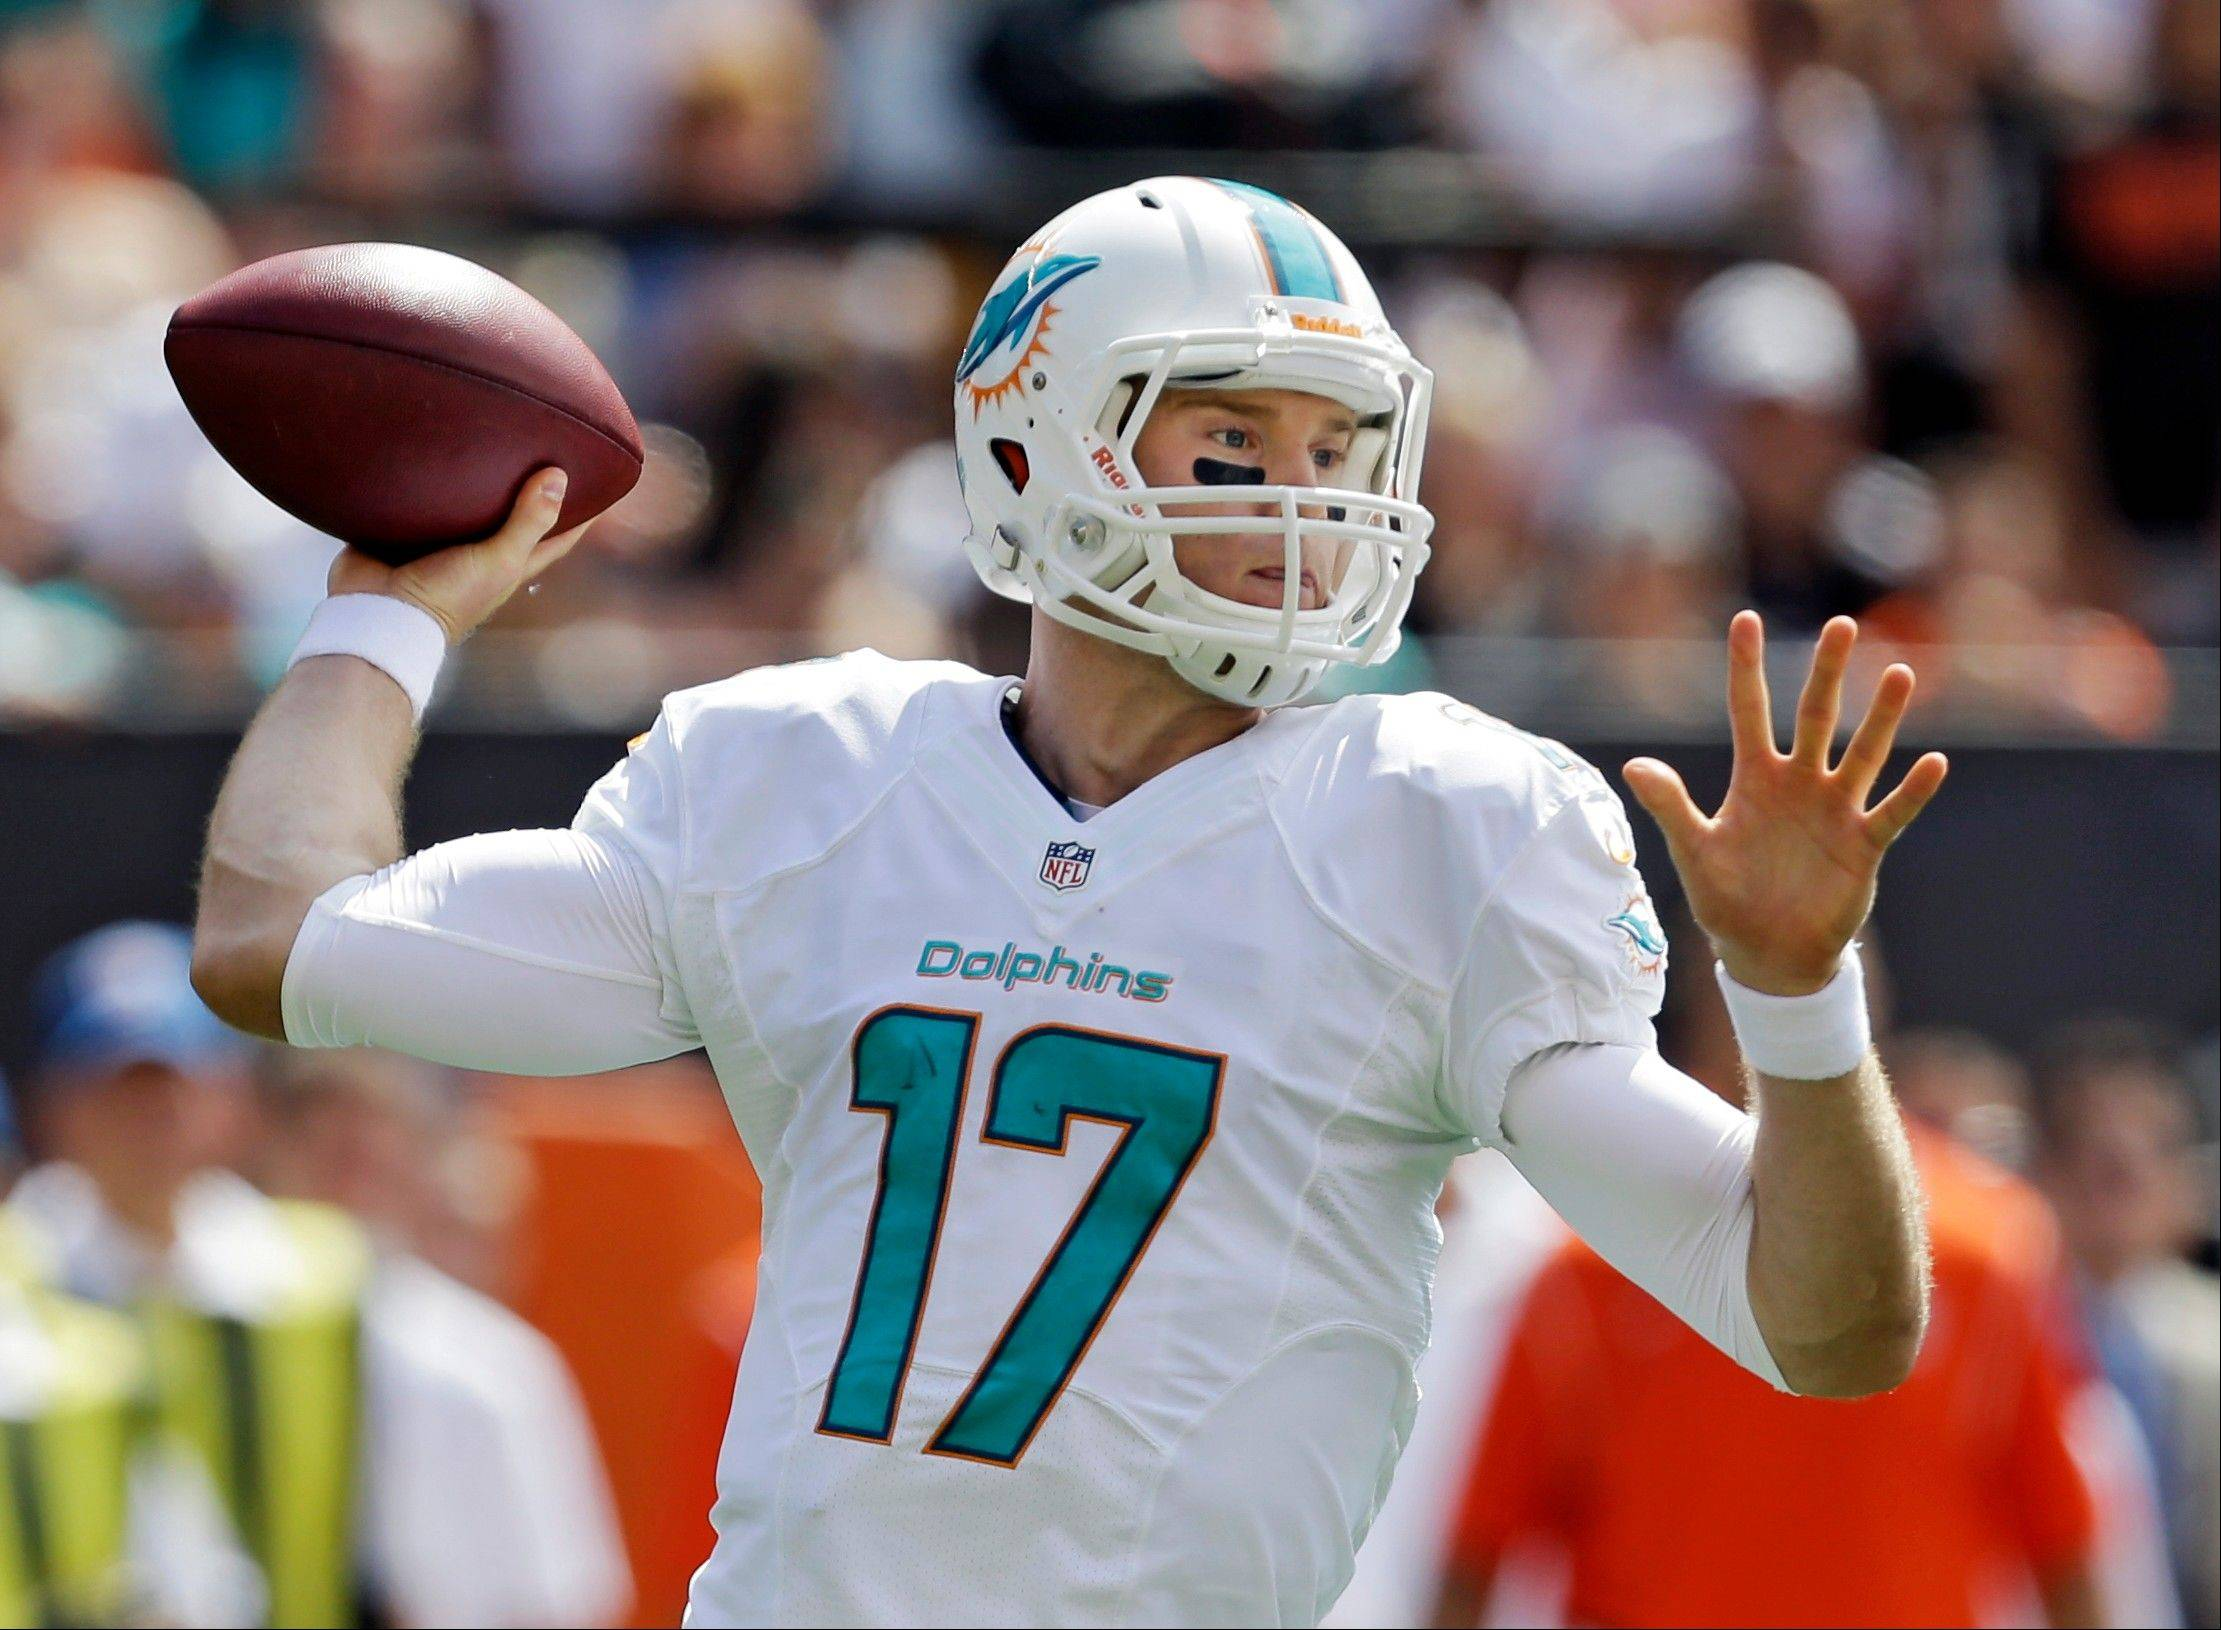 Miami Dolphins quarterback Ryan Tannehill passes against the Cleveland Browns in the first quarter of an NFL football game Sunday, Sept. 8, 2013, in Cleveland.